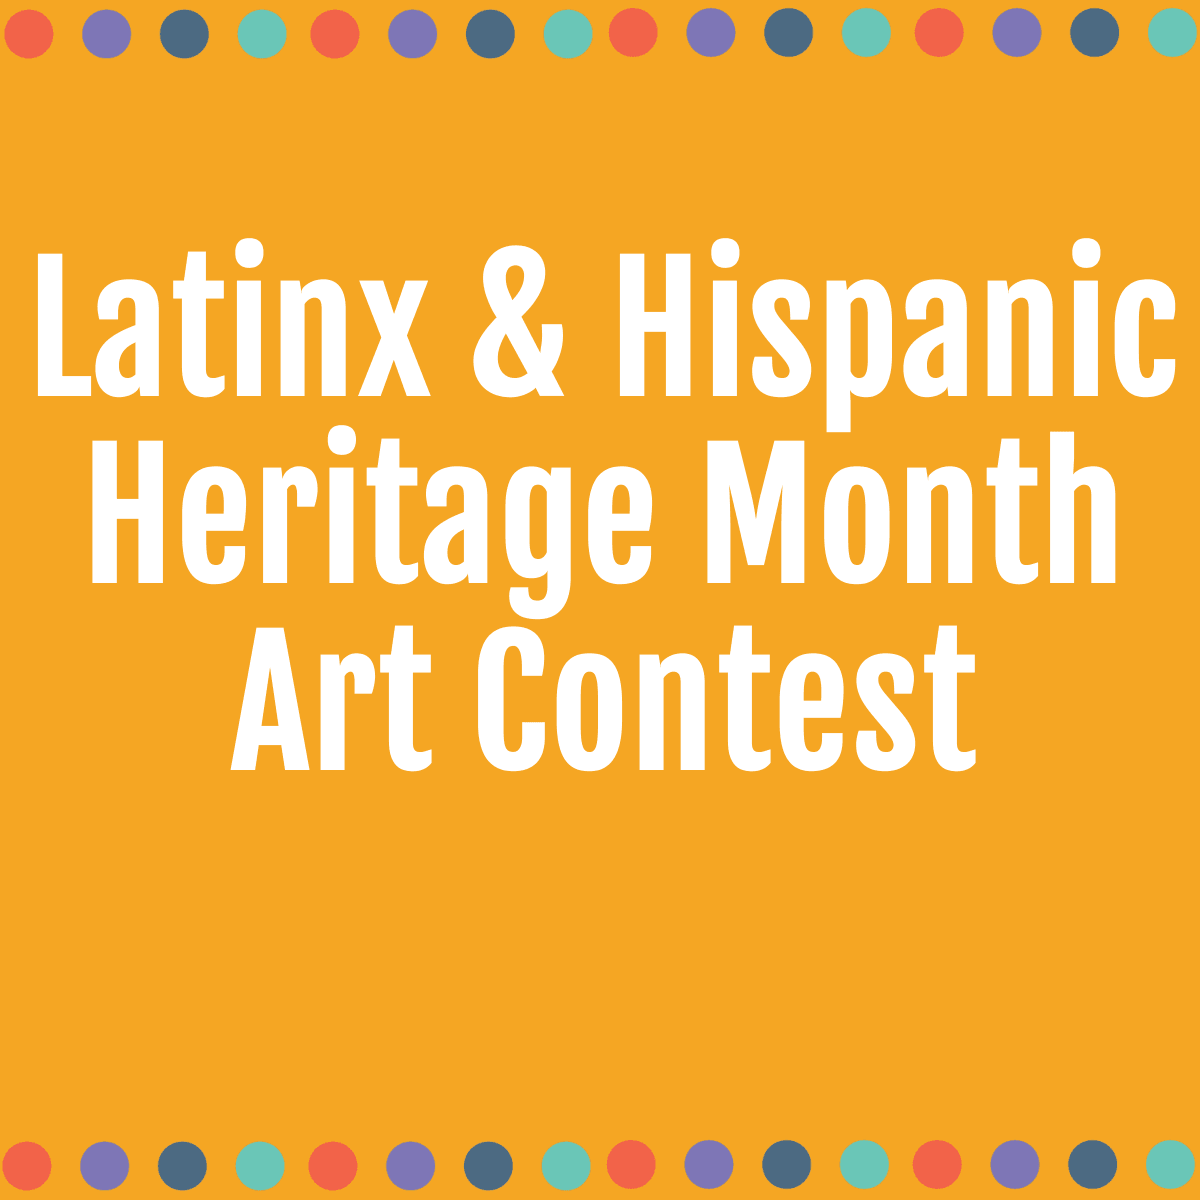 latinx and hispanic heritage month art contest